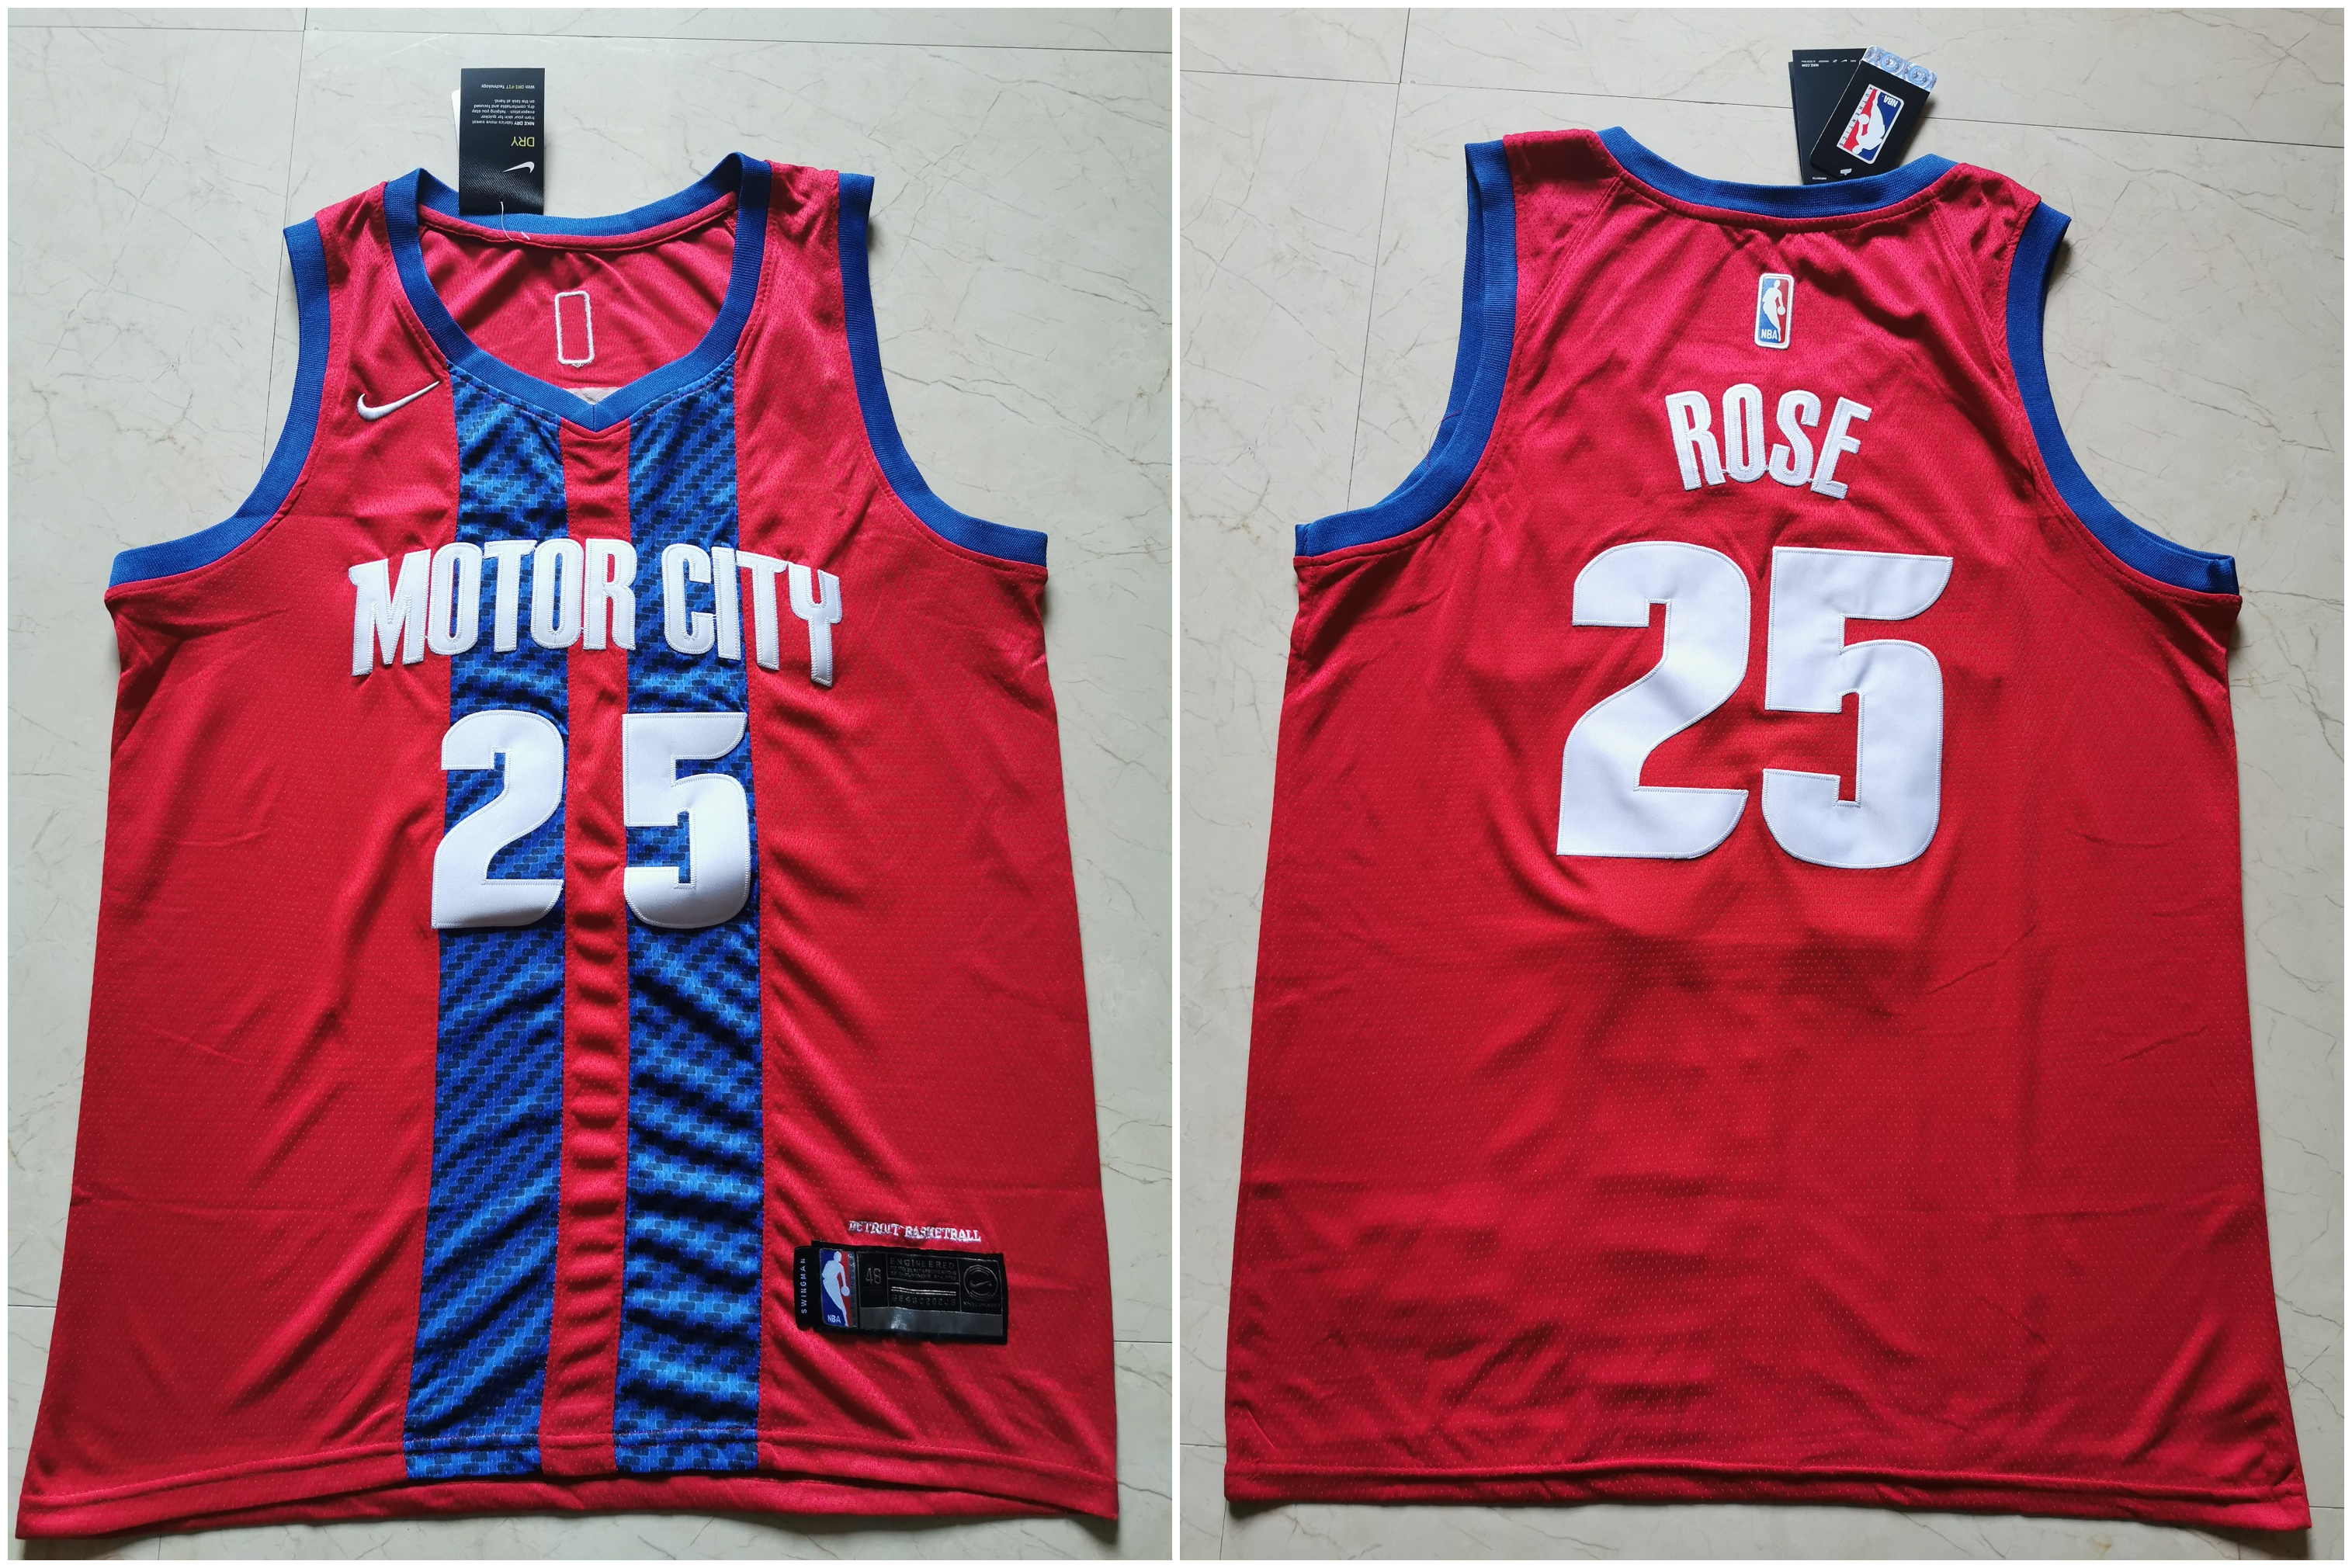 76ers 25 Ben Simmons Red 2019-20 City Edition Nike Swingman Jersey